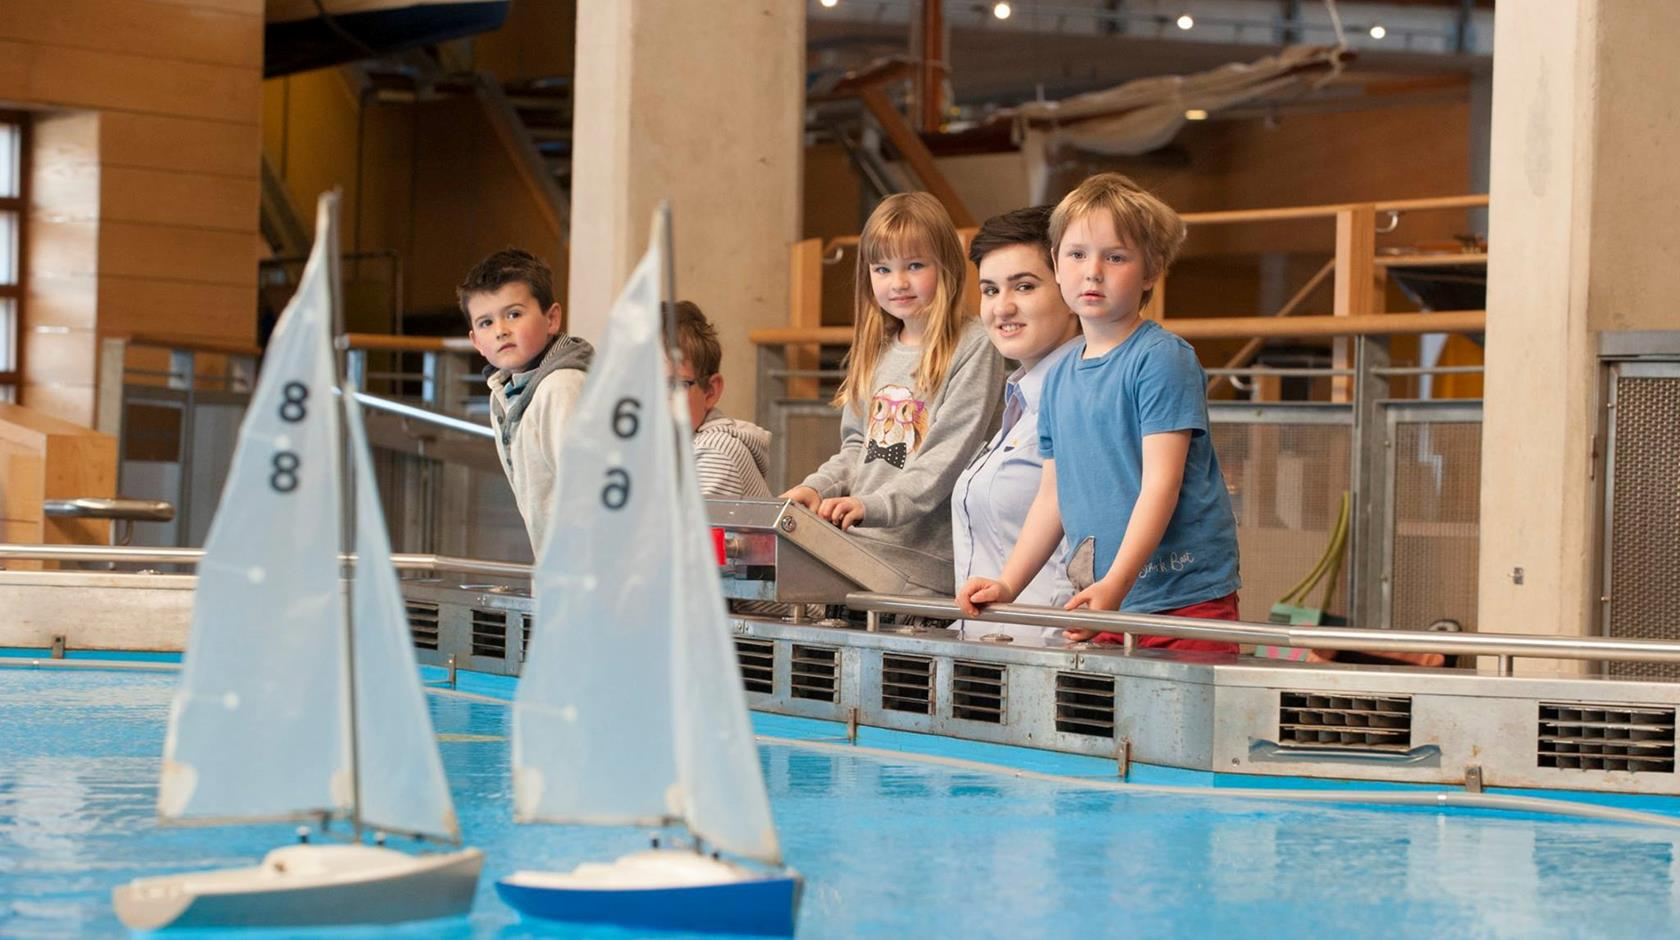 things to do on a rainy day in cornwall -  national maritime museum falmouth